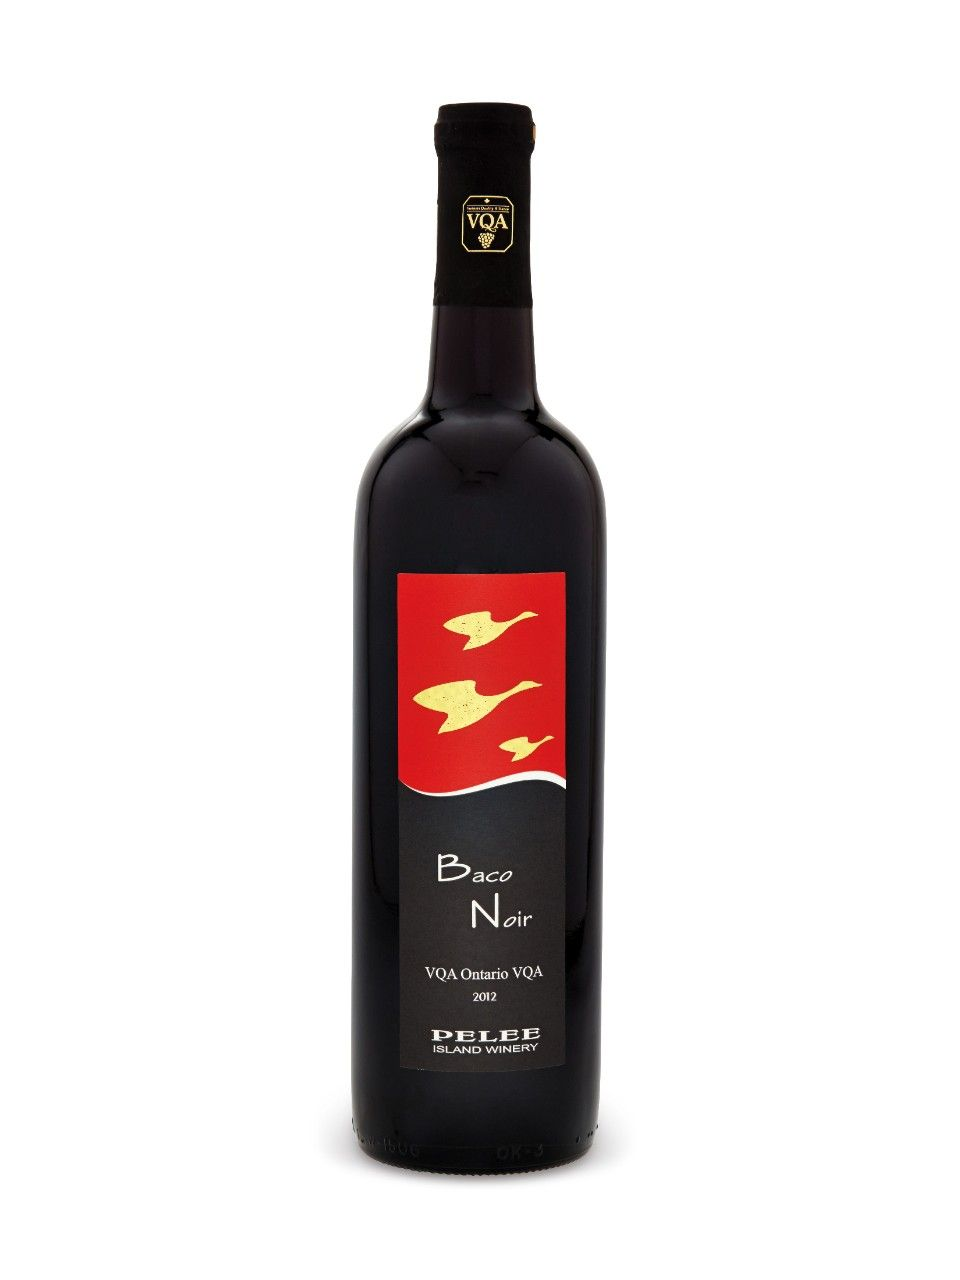 Pelee Island Baco Noir Vqa Wine And Liquor Wine Drinks Wine Bottle